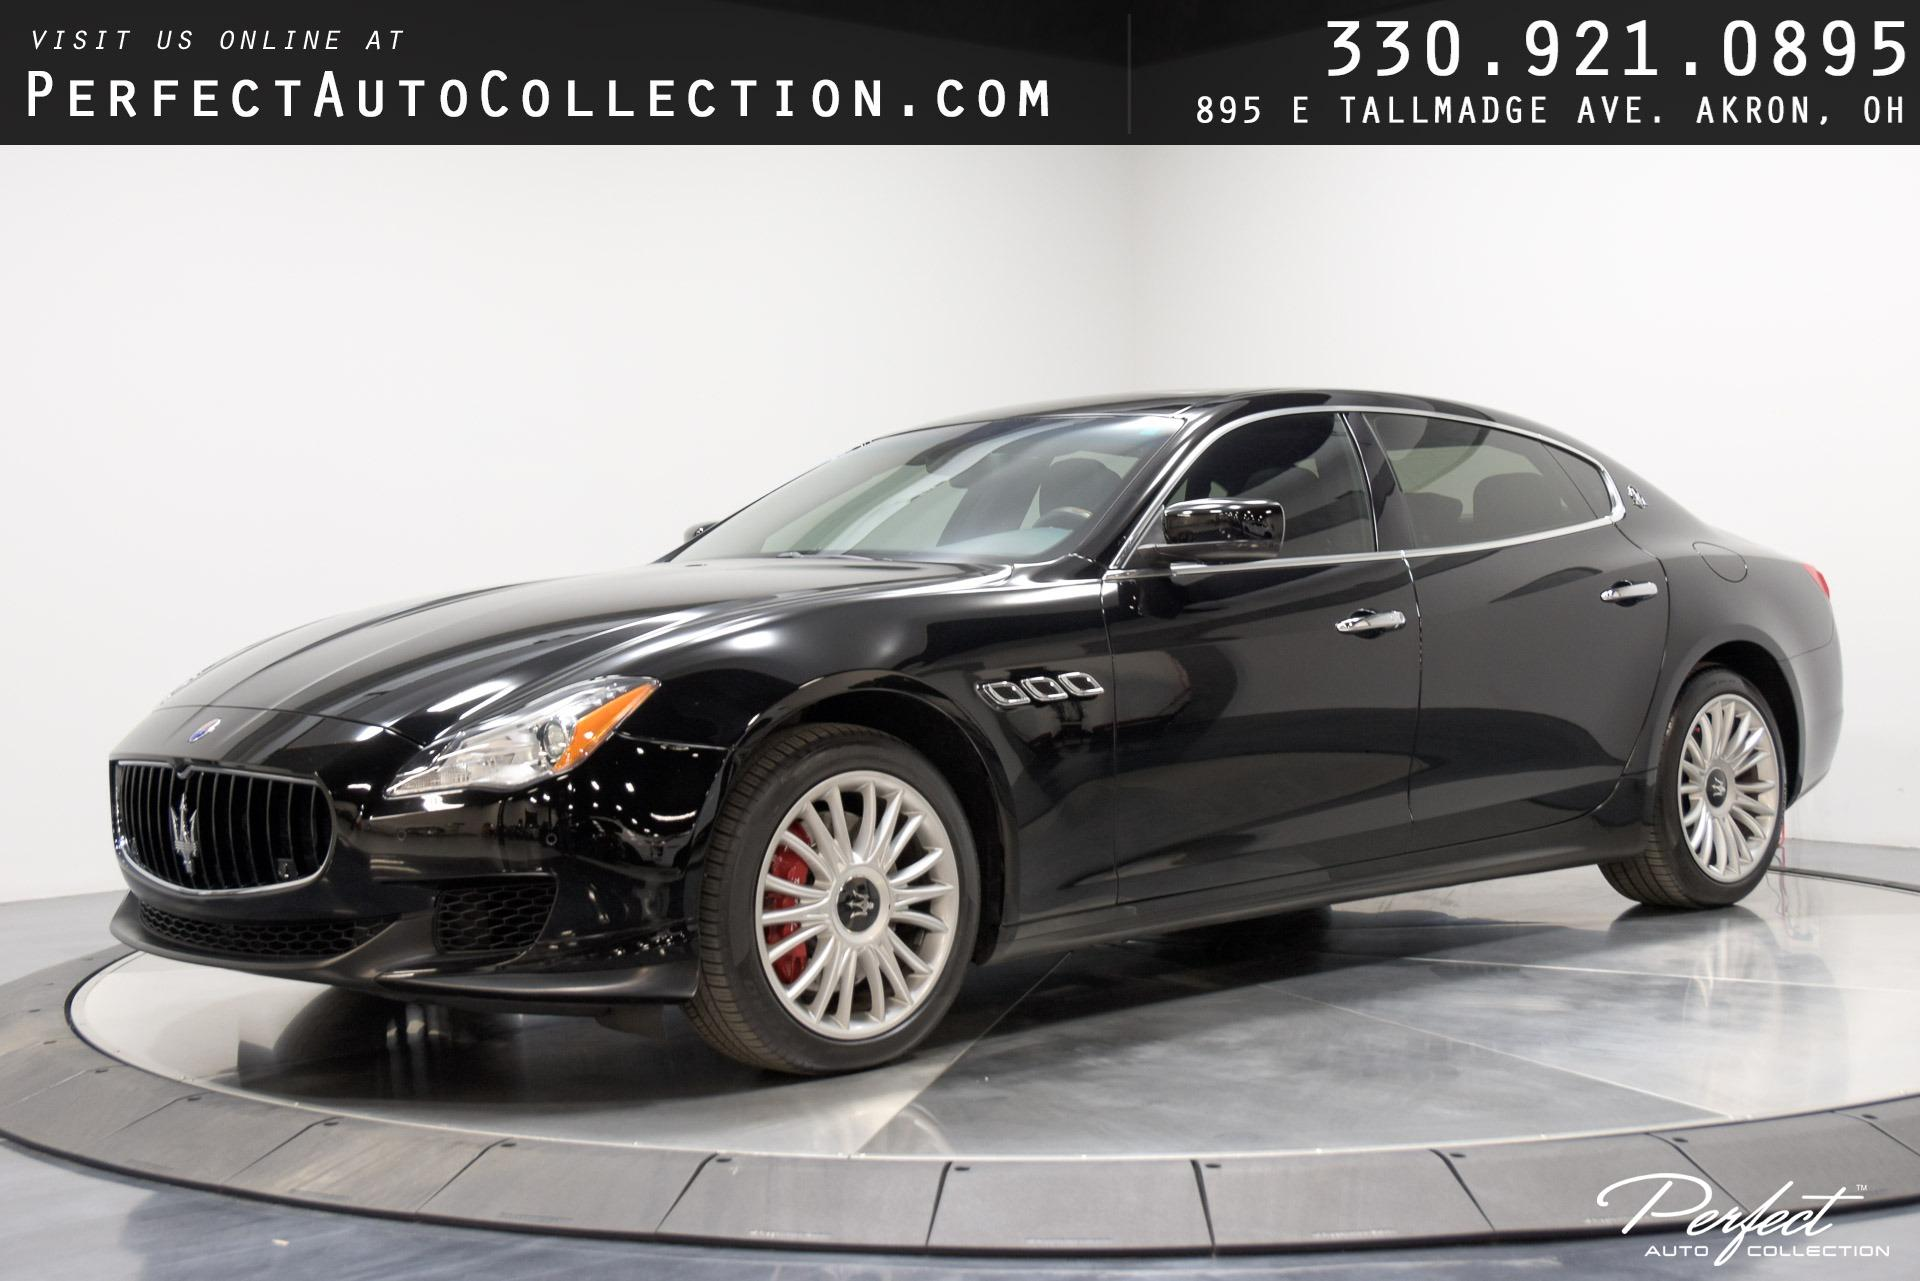 Used 2014 Maserati Quattroporte S Q4 for sale $31,995 at Perfect Auto Collection in Akron OH 44310 1